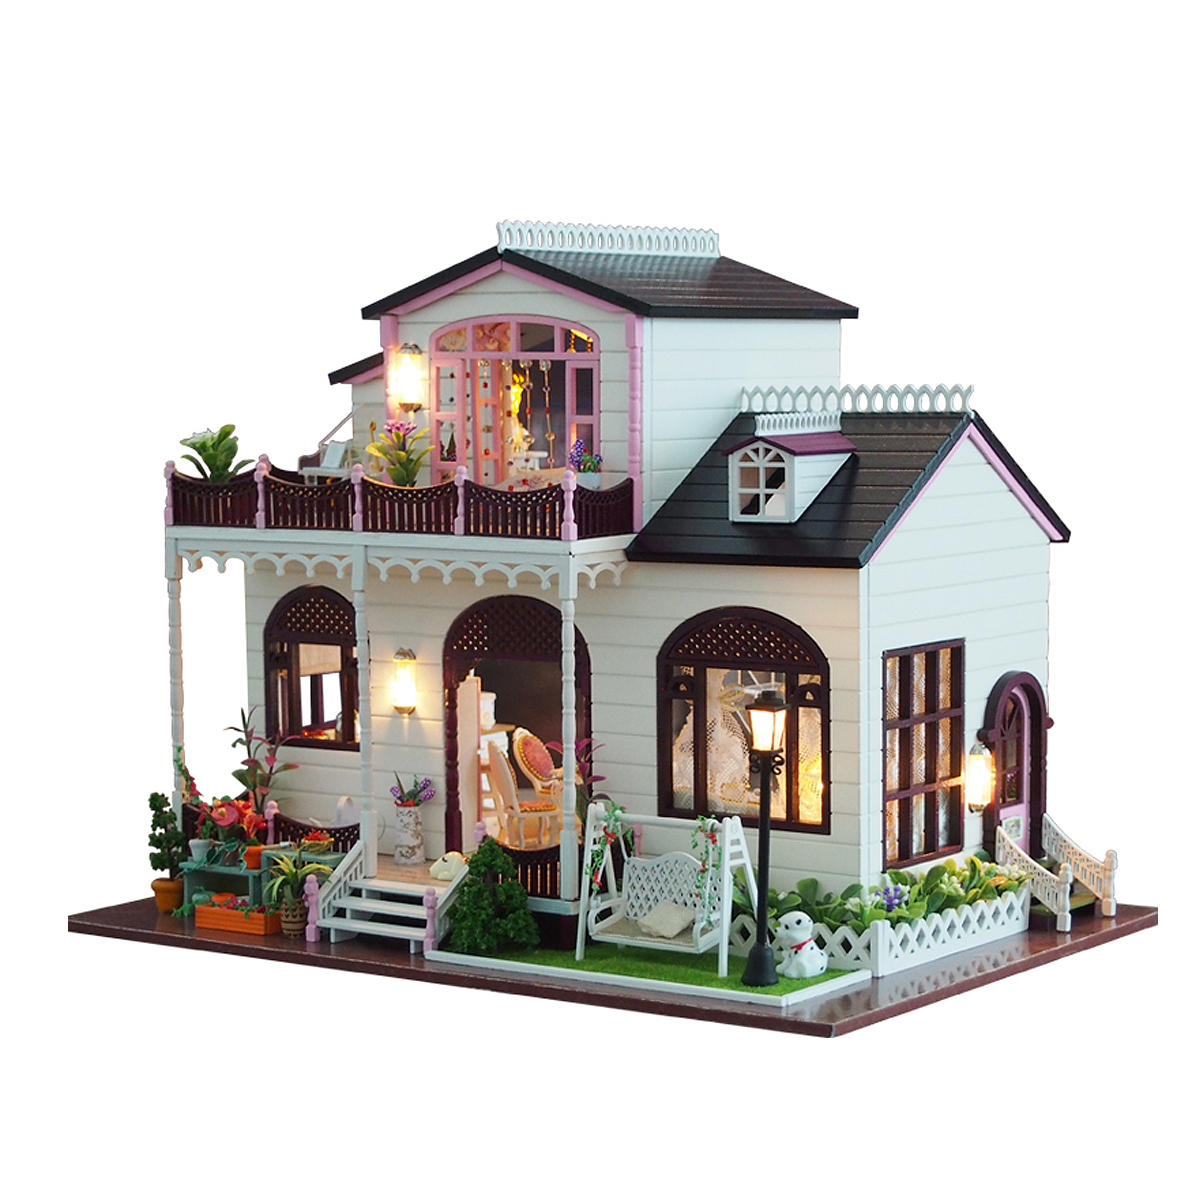 Doll House Furniture For Sale Near